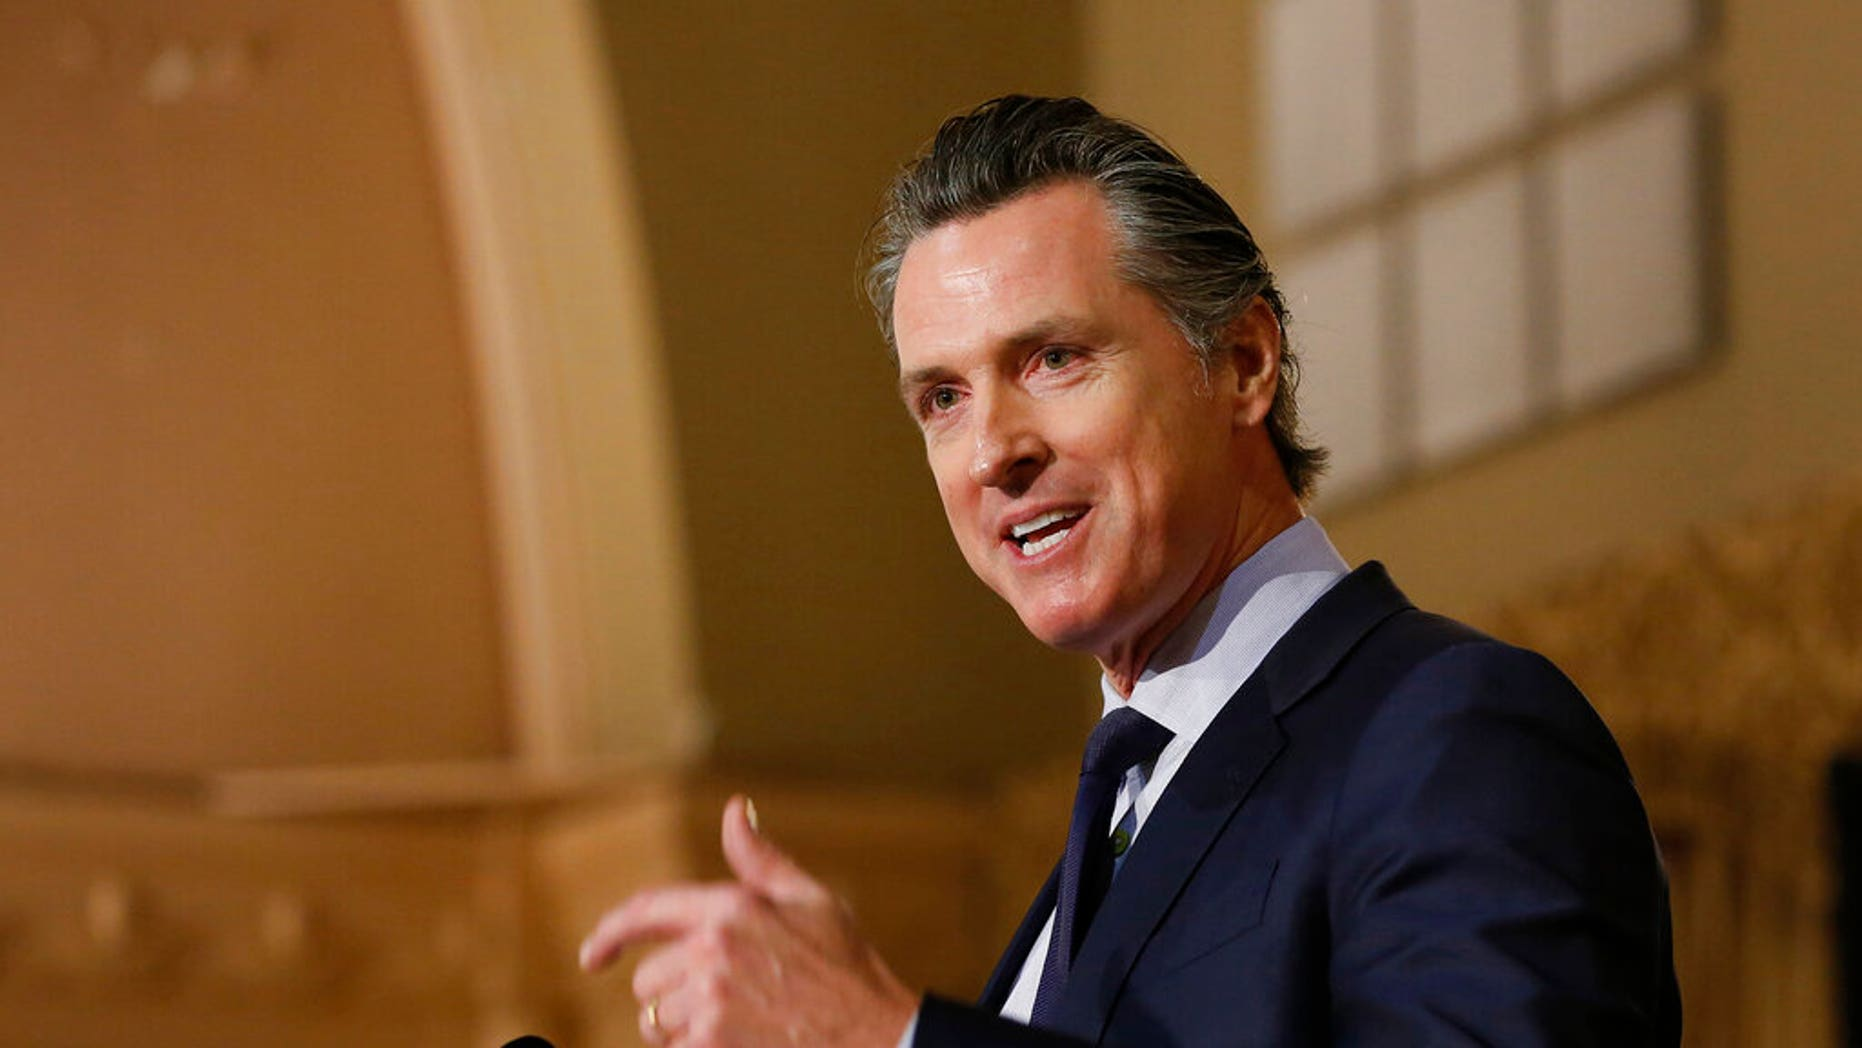 Newsom Redirects National Guard Fed Border Operations To Other Duties